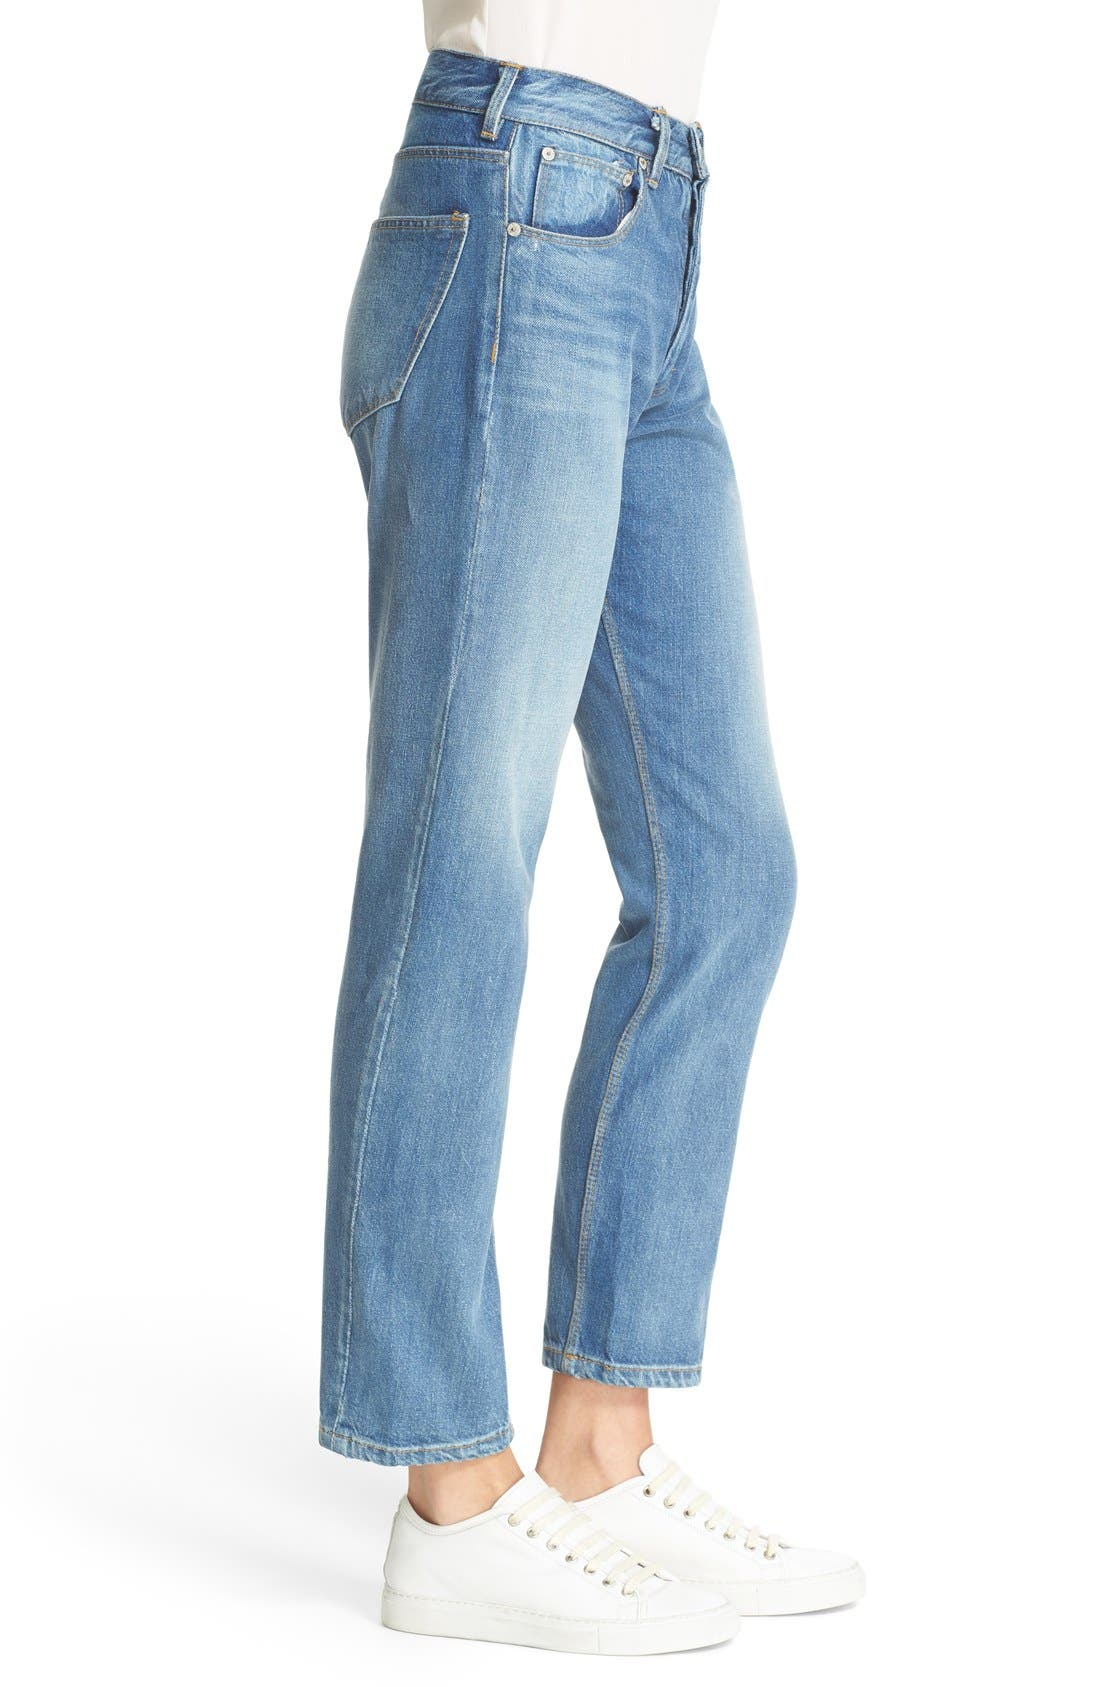 LA VIE REBECCA TAYLOR, Beatrice High Waist Crop Straight Leg Jeans, Alternate thumbnail 3, color, 424